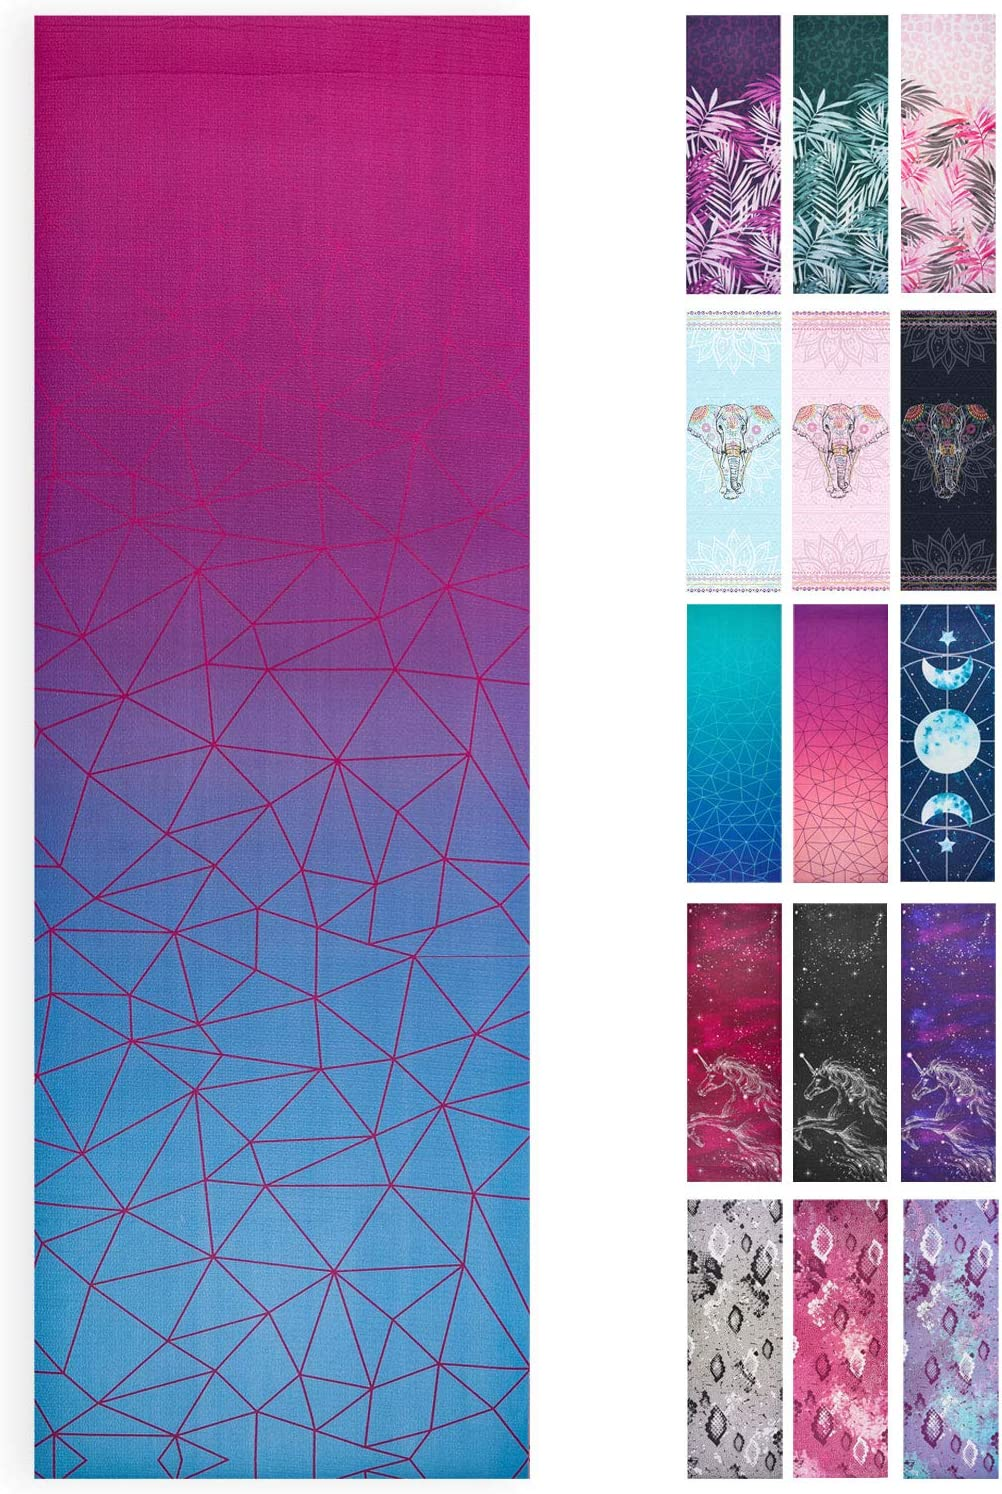 Lions Printed Yoga Mats Home 183 x61cm Gym Fitness Workout Ideal for Exercise Pilates Camping Pvc 6mm Thick Dual Layer Mat with Carry Straps